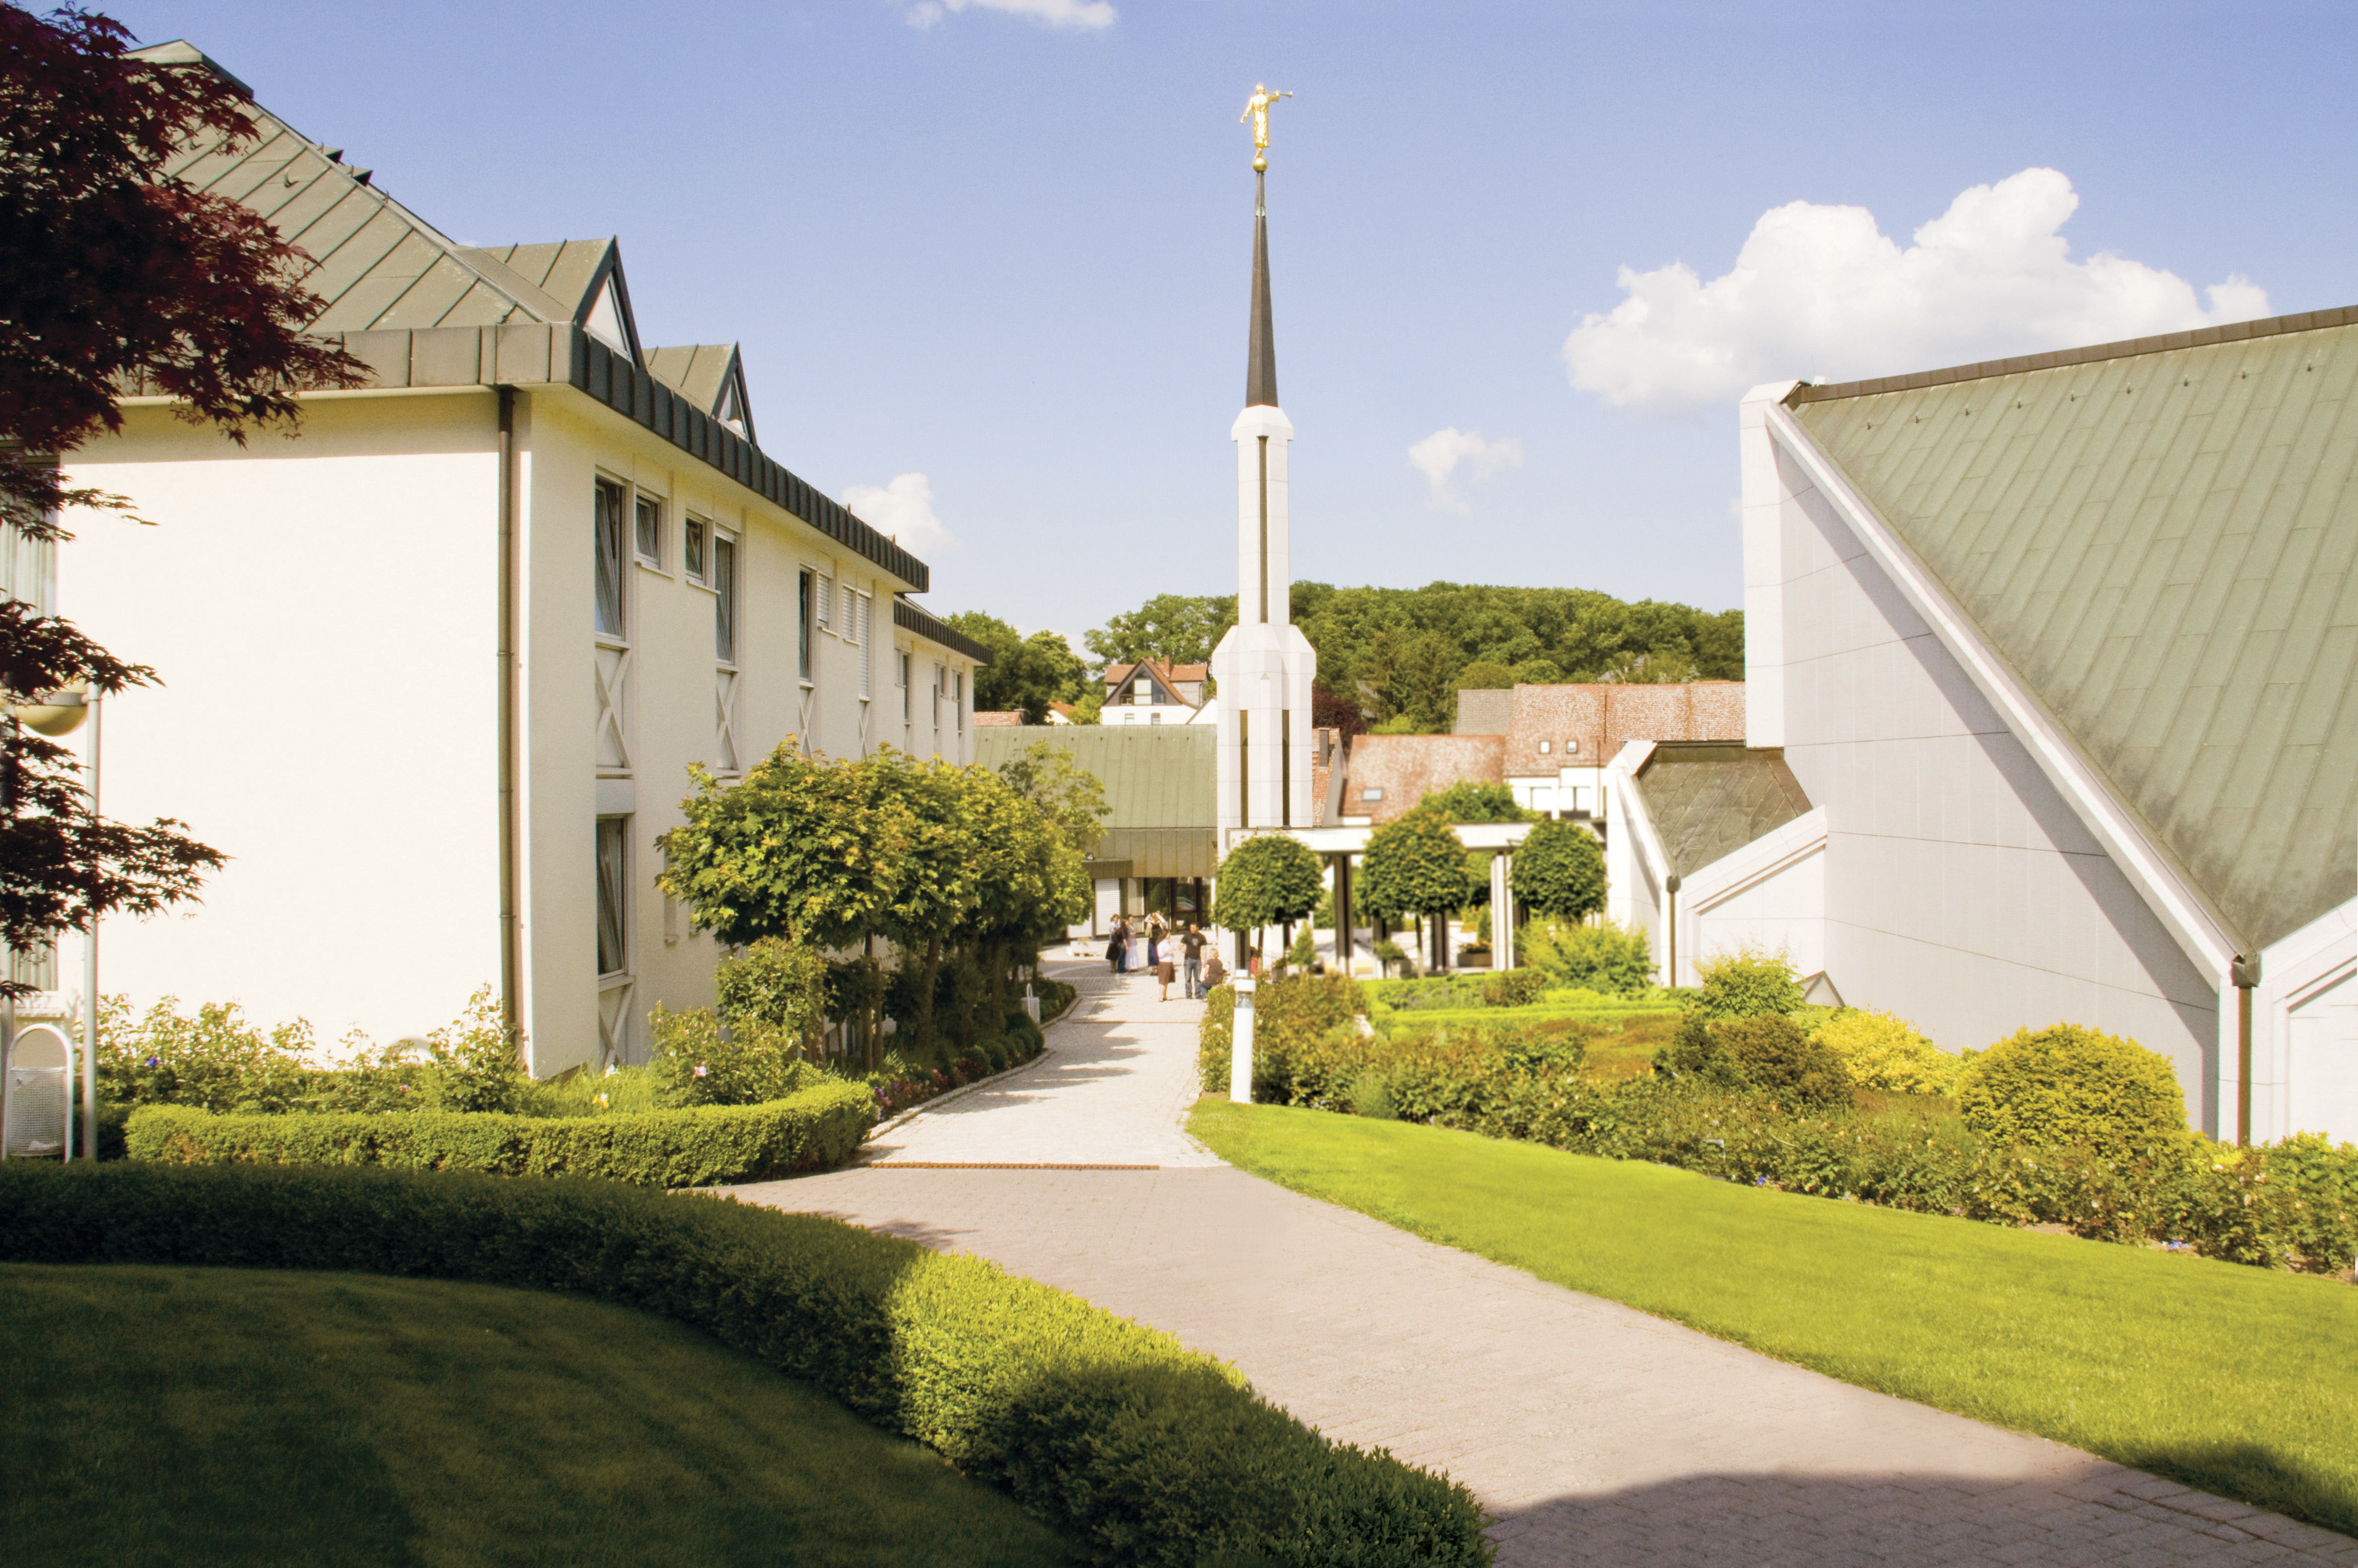 A view of the Frankfurt Germany Temple from the back.